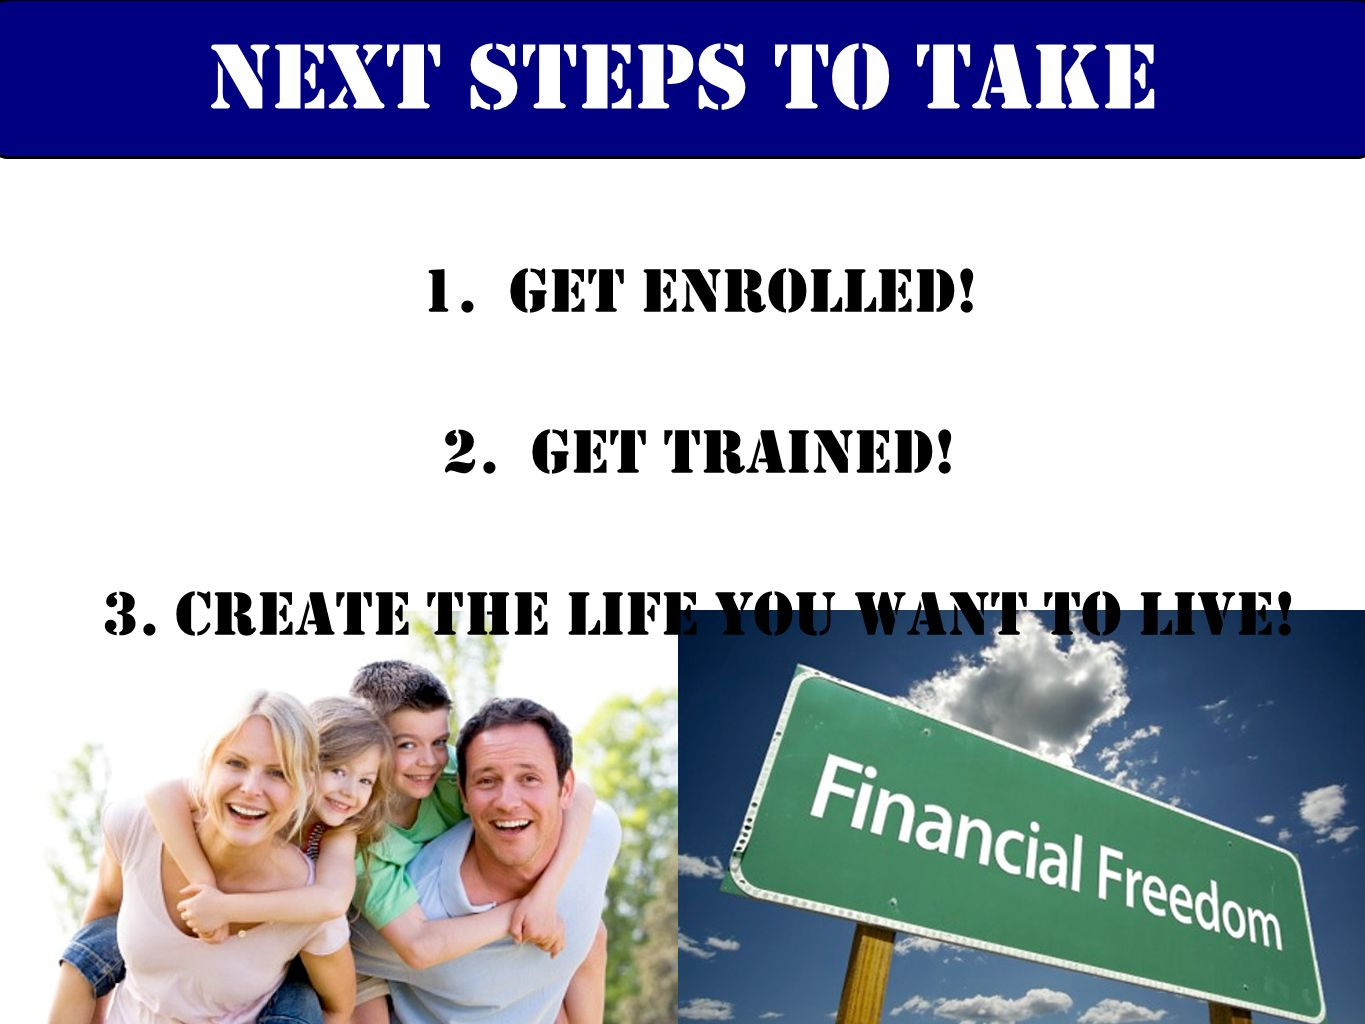 3. Create the life you want to live!